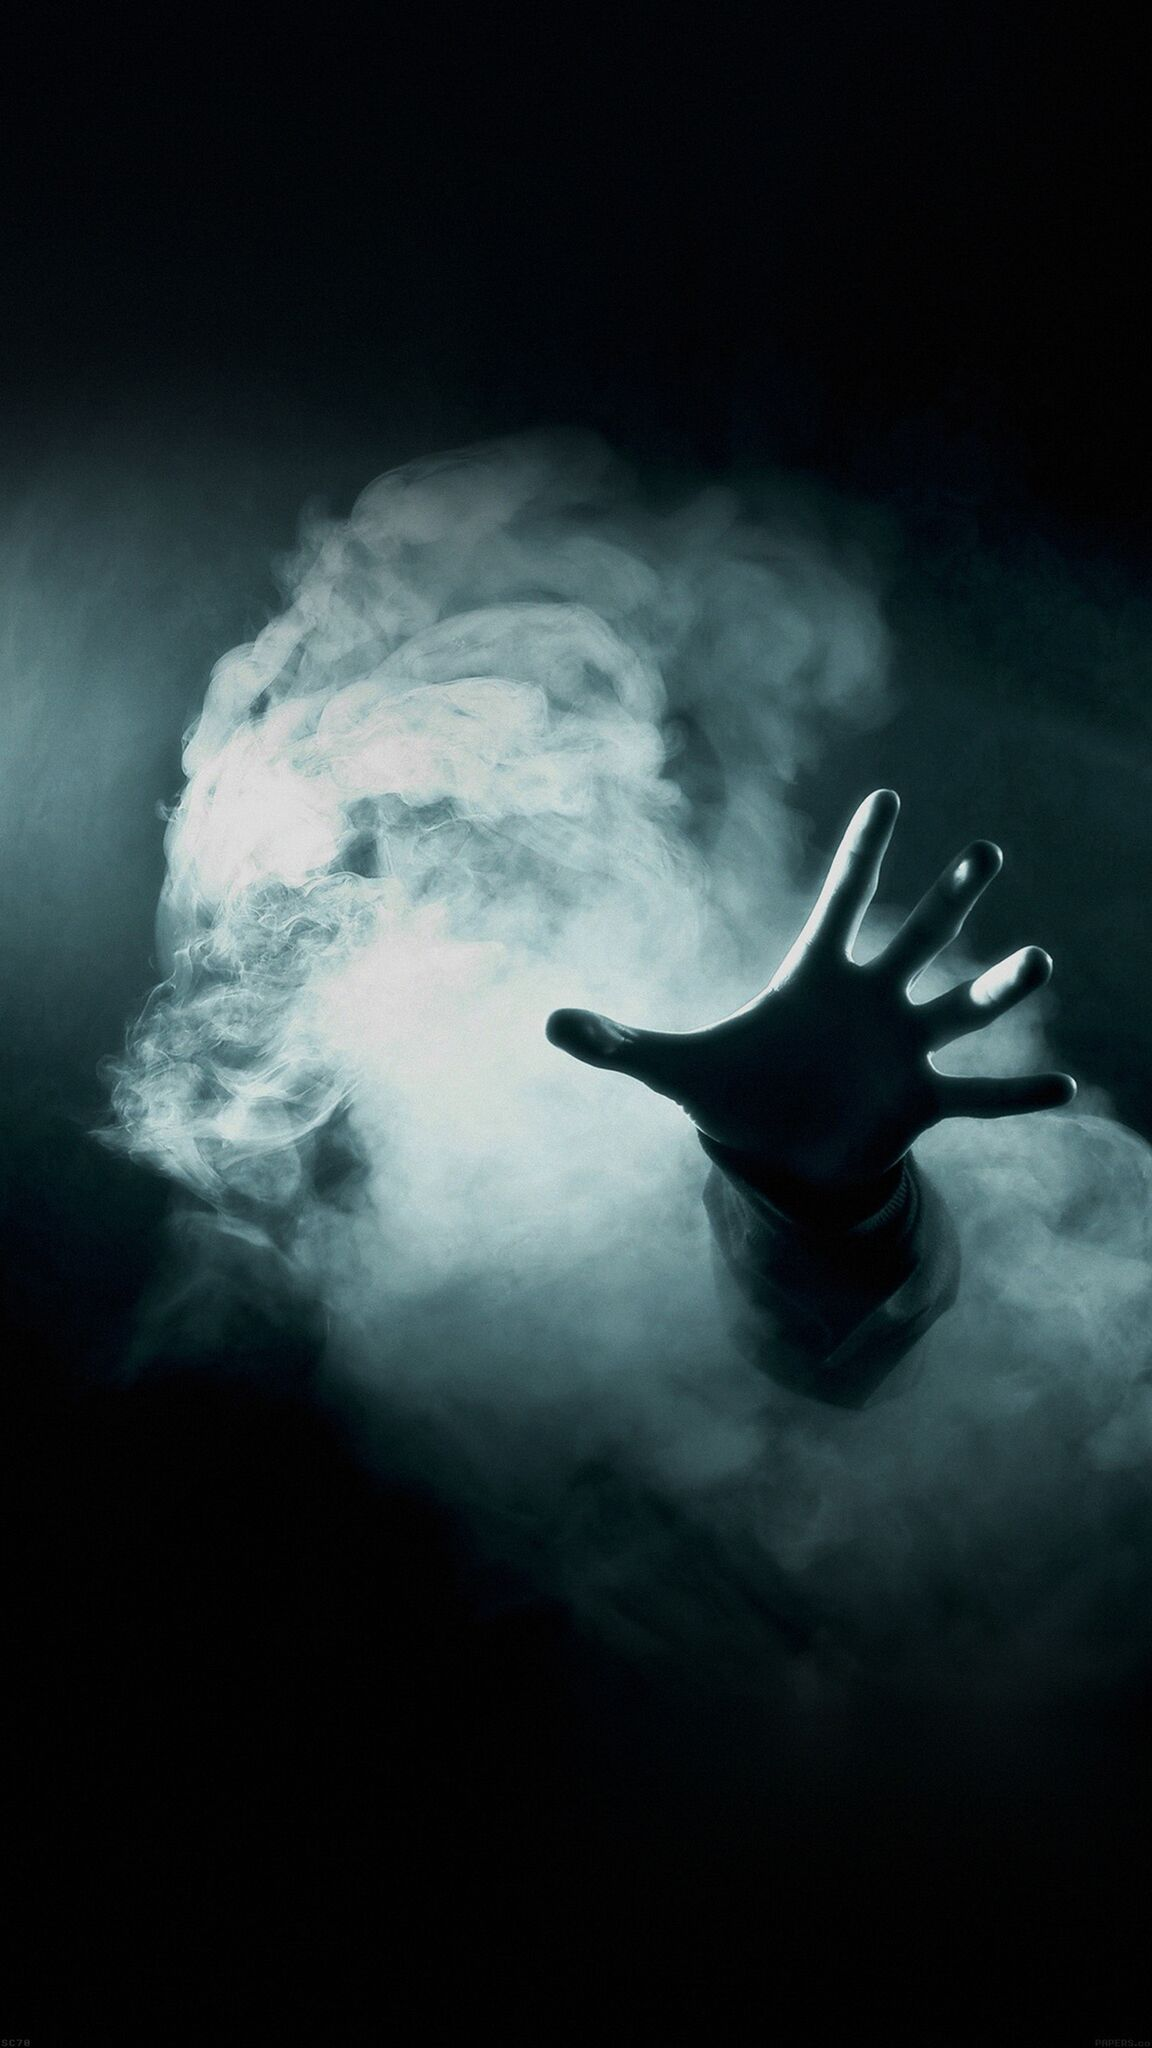 hand-fog-scary-dream-iphone-wallpaper